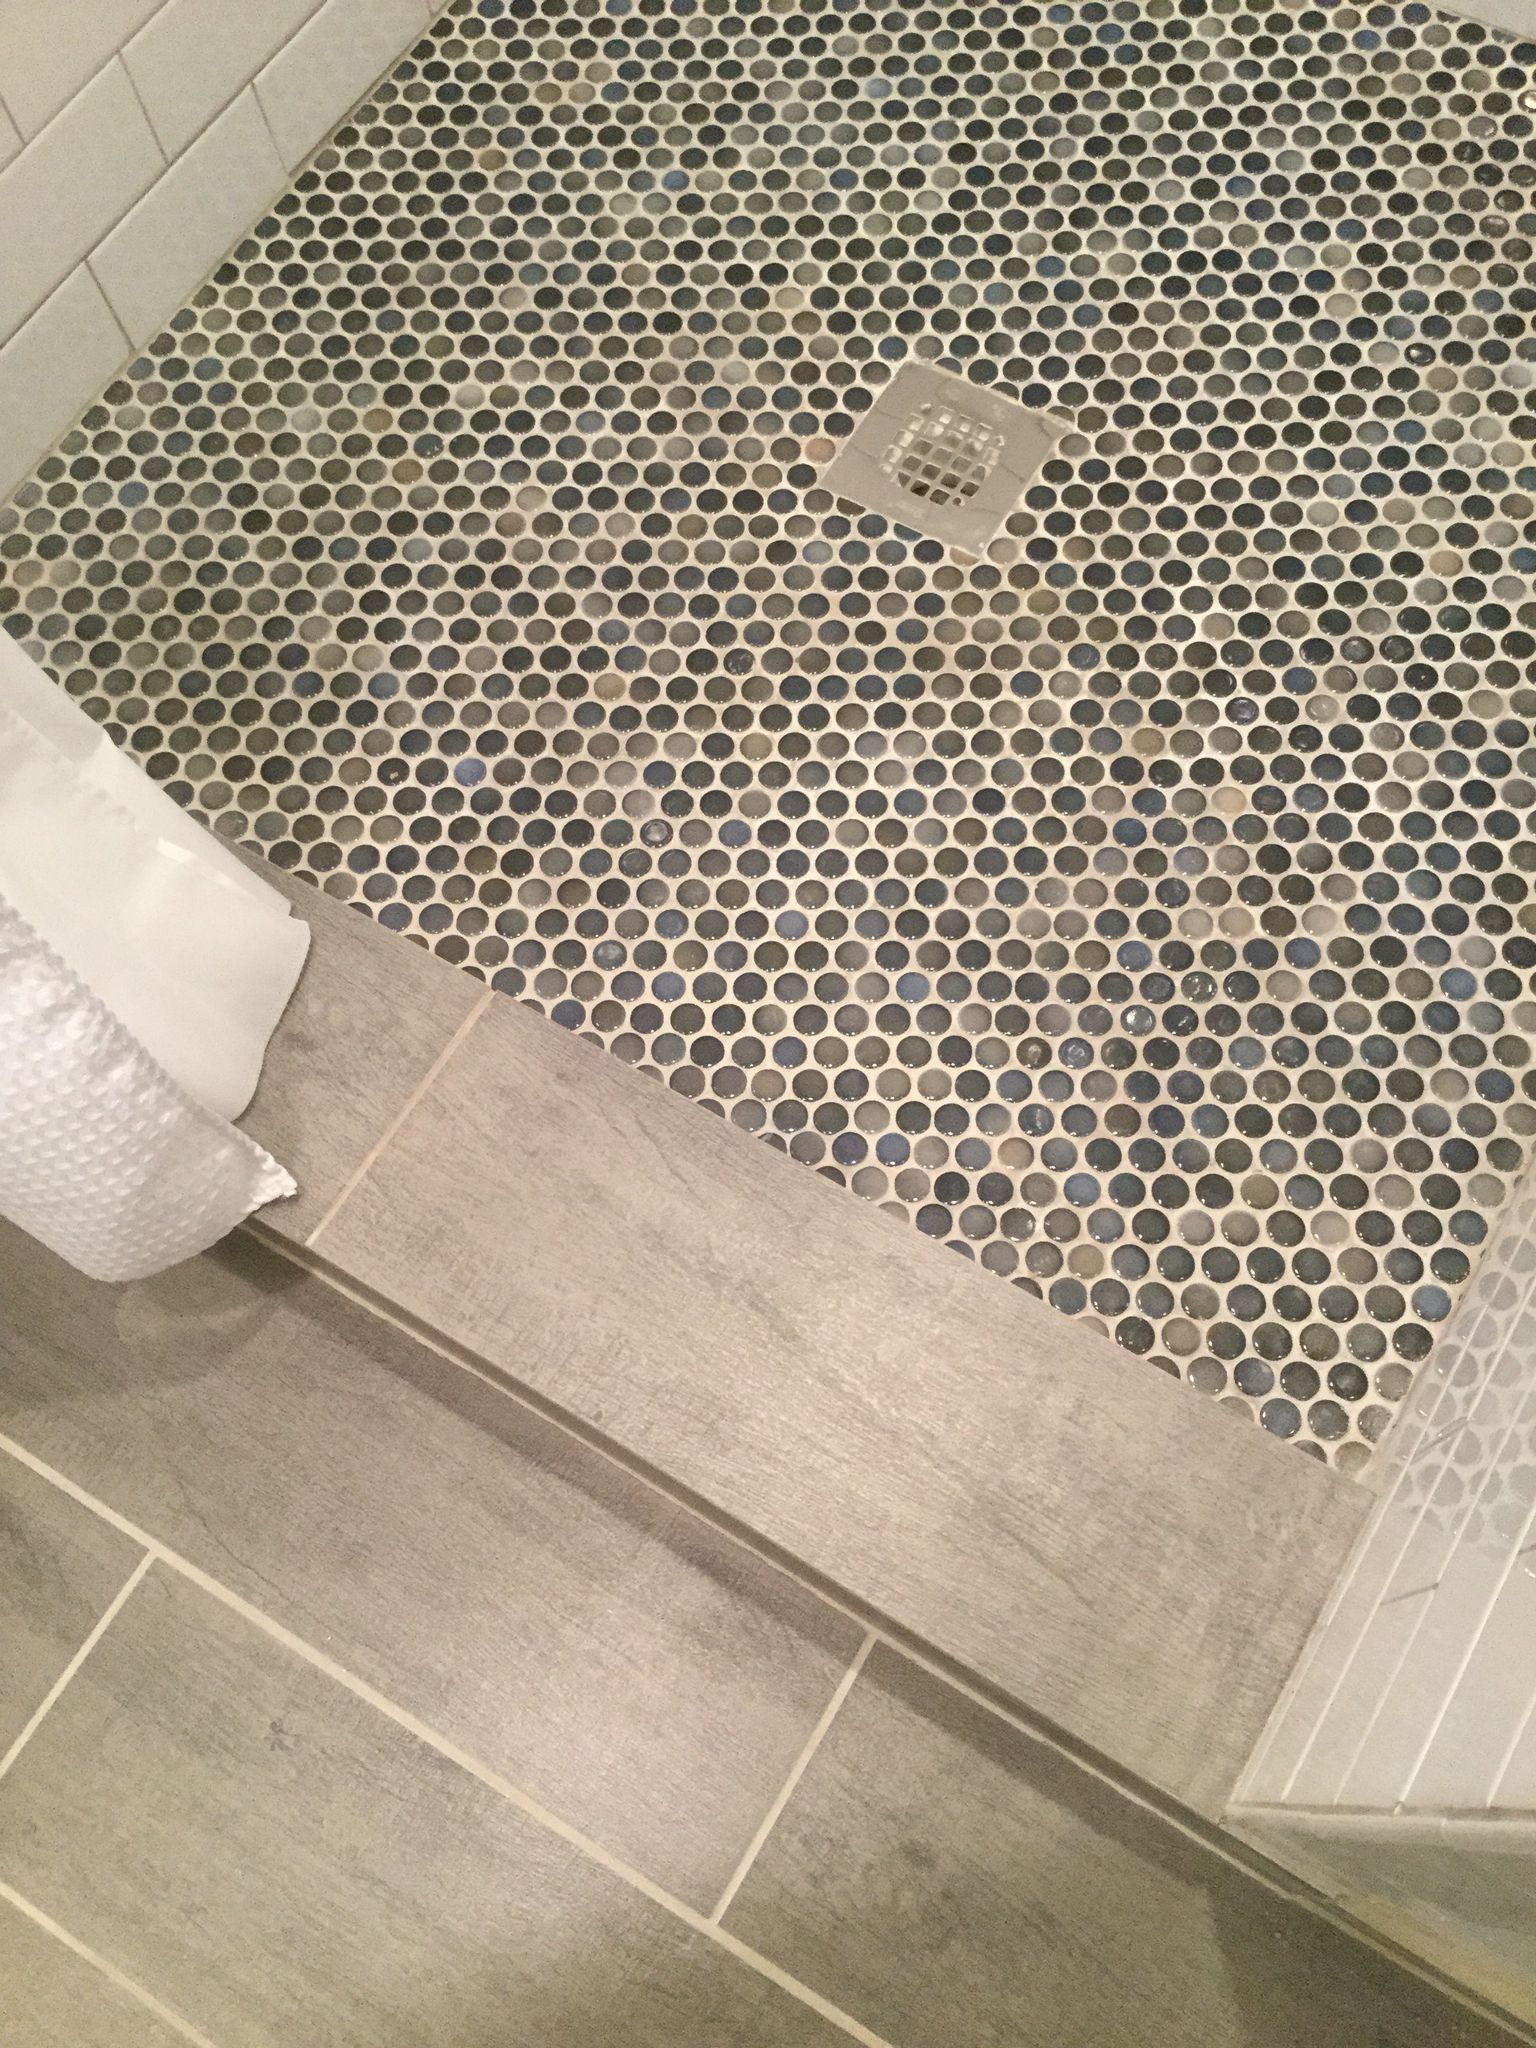 Blue And Gray Penny Tile On Shower Floor With Images Unique